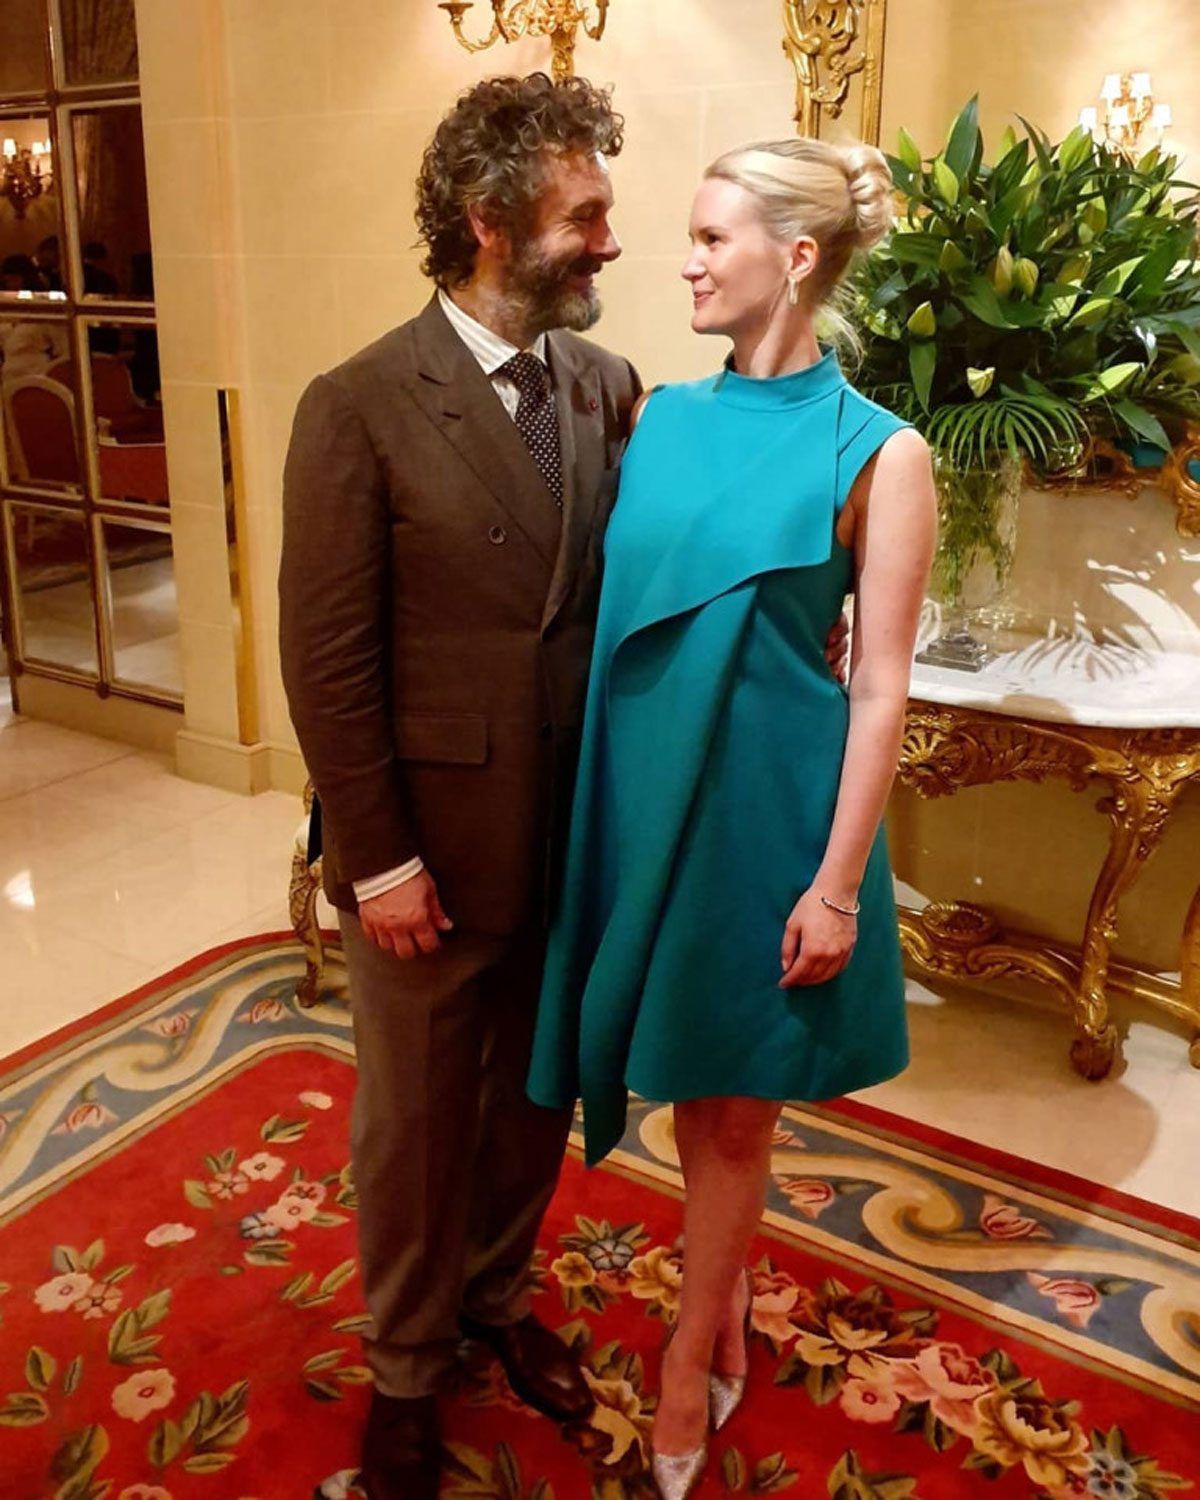 50-Year-Old Michael Sheen Is Having A Baby With His 25-Year-Old Girlfriend!